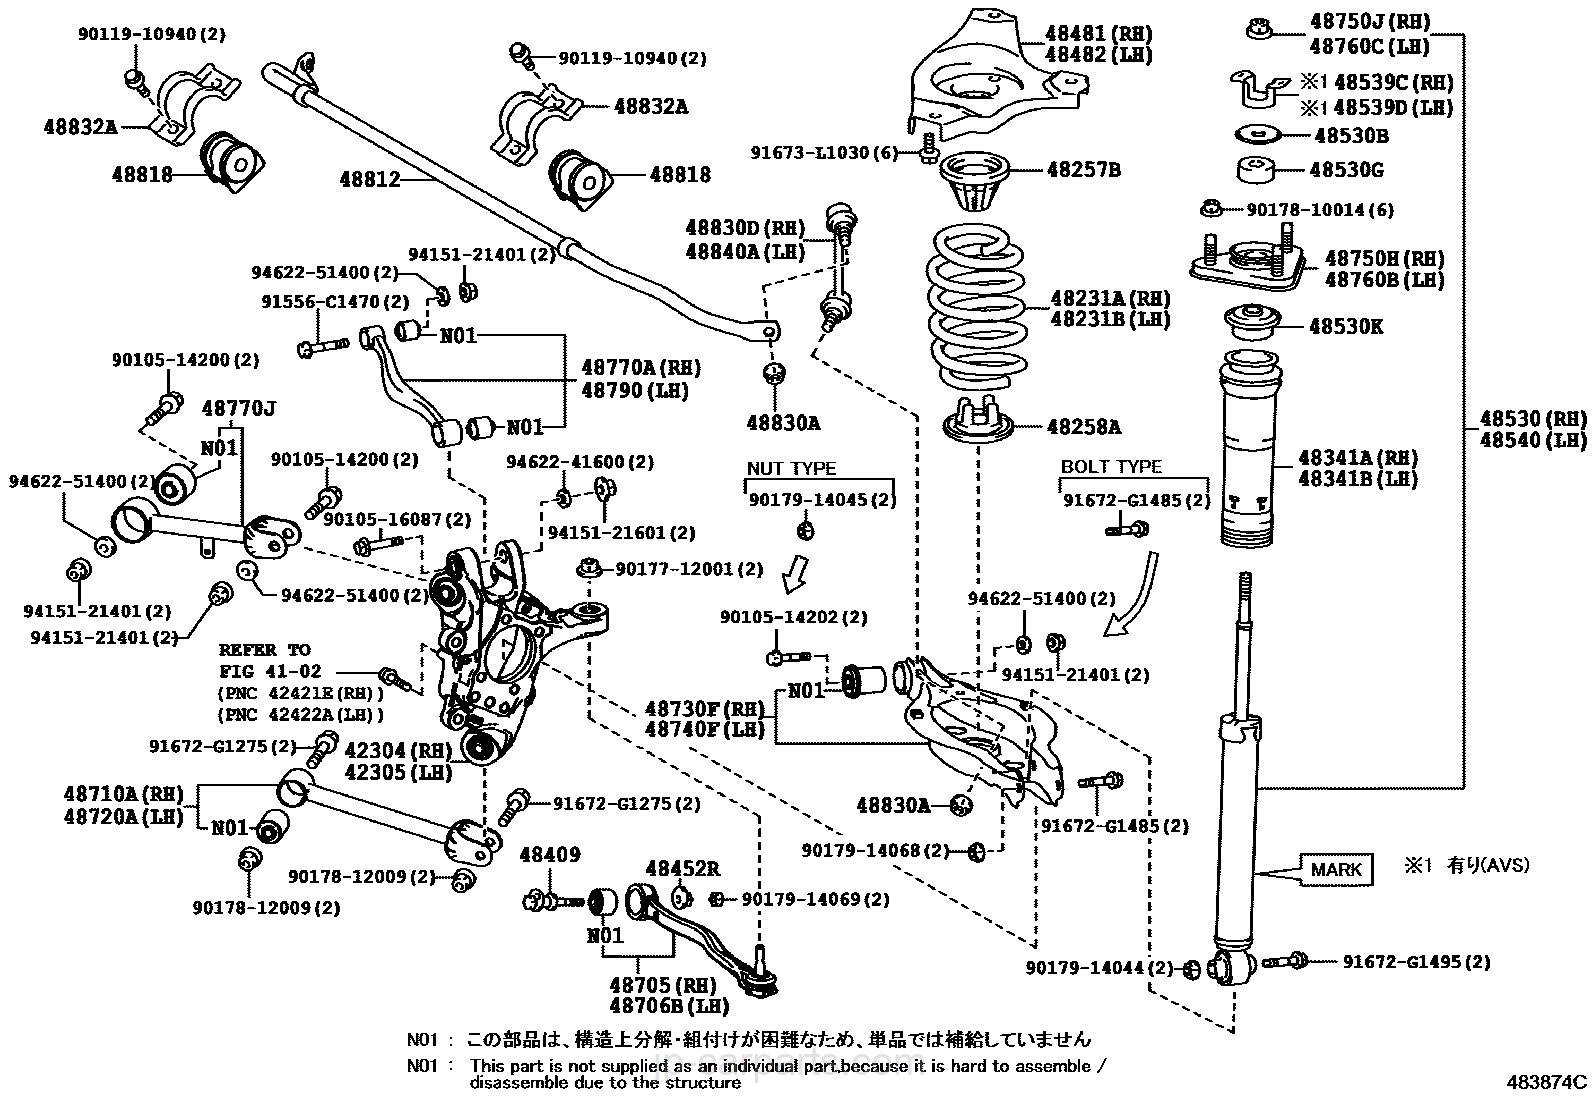 lexus rx330 fuse diagram with Lexus Body Parts Diagram on Wiring Diagram Saab 9 3 2005 in addition 2010 Lexus Rx 350 Wiring Diagram together with 2008 Dodge Caravan Fuse Box Location moreover Hummer H3 Engine Solenoid Location additionally Chrysler 300 2005 Fuse Box Diagram.